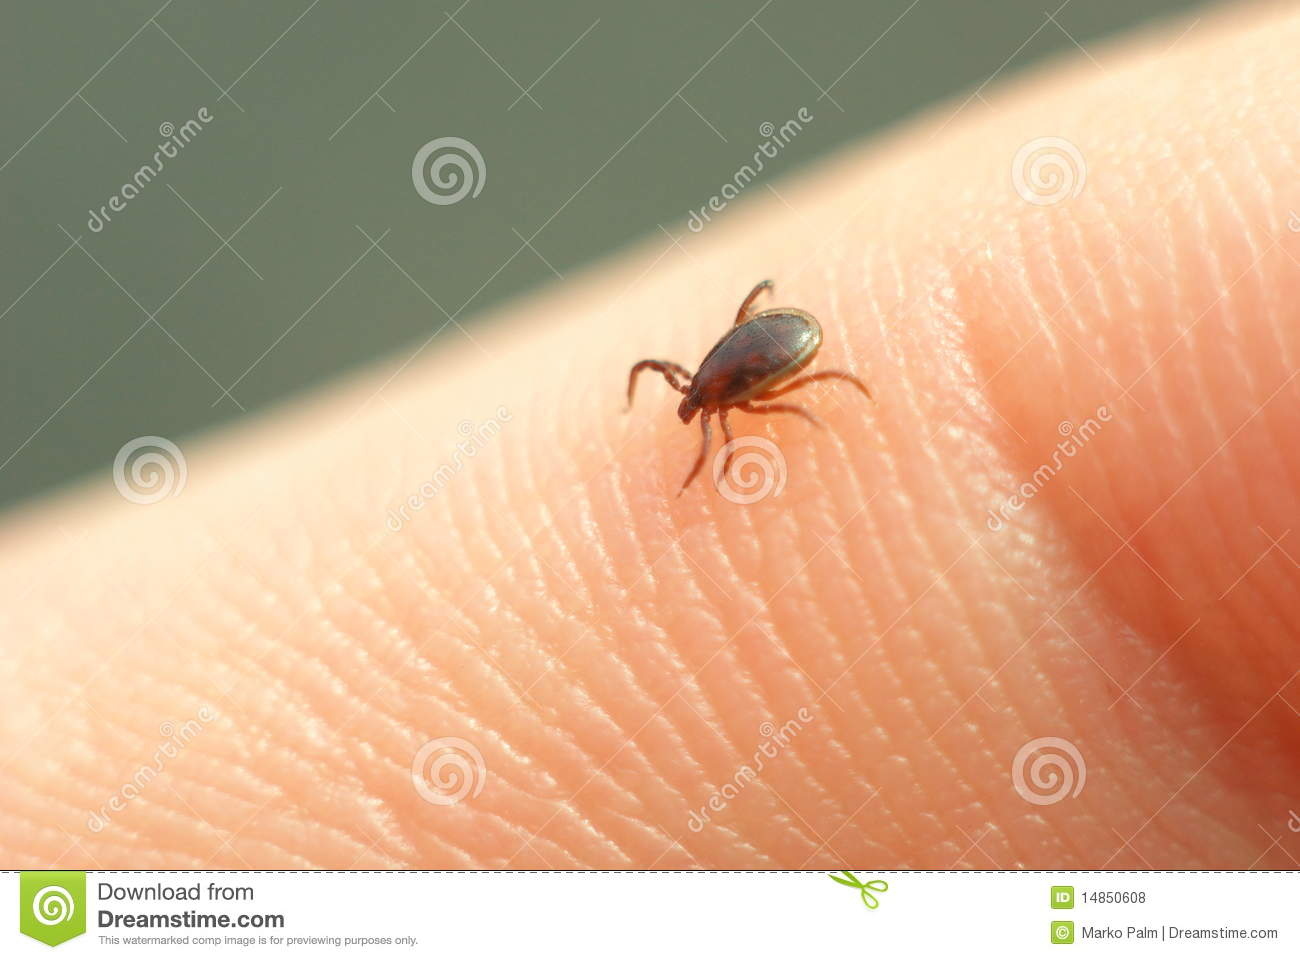 Starved Tick Seeking Right Place on Host Body